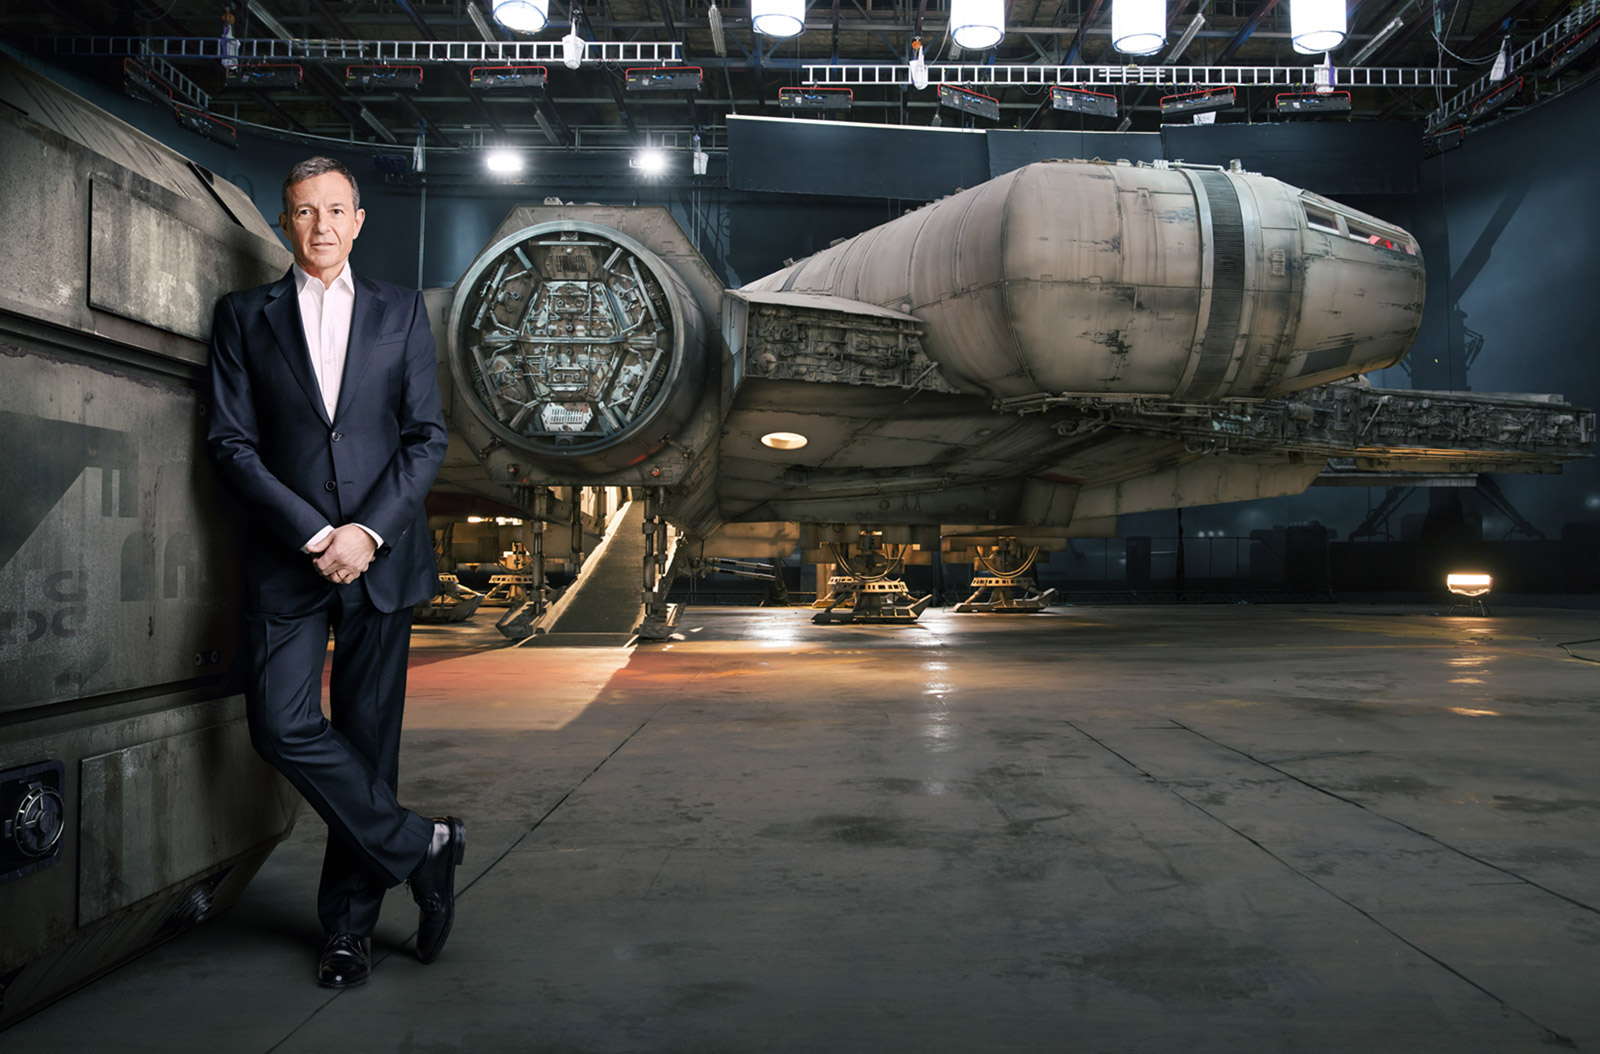 Bob Iger standing in front of the Millennium Falcon